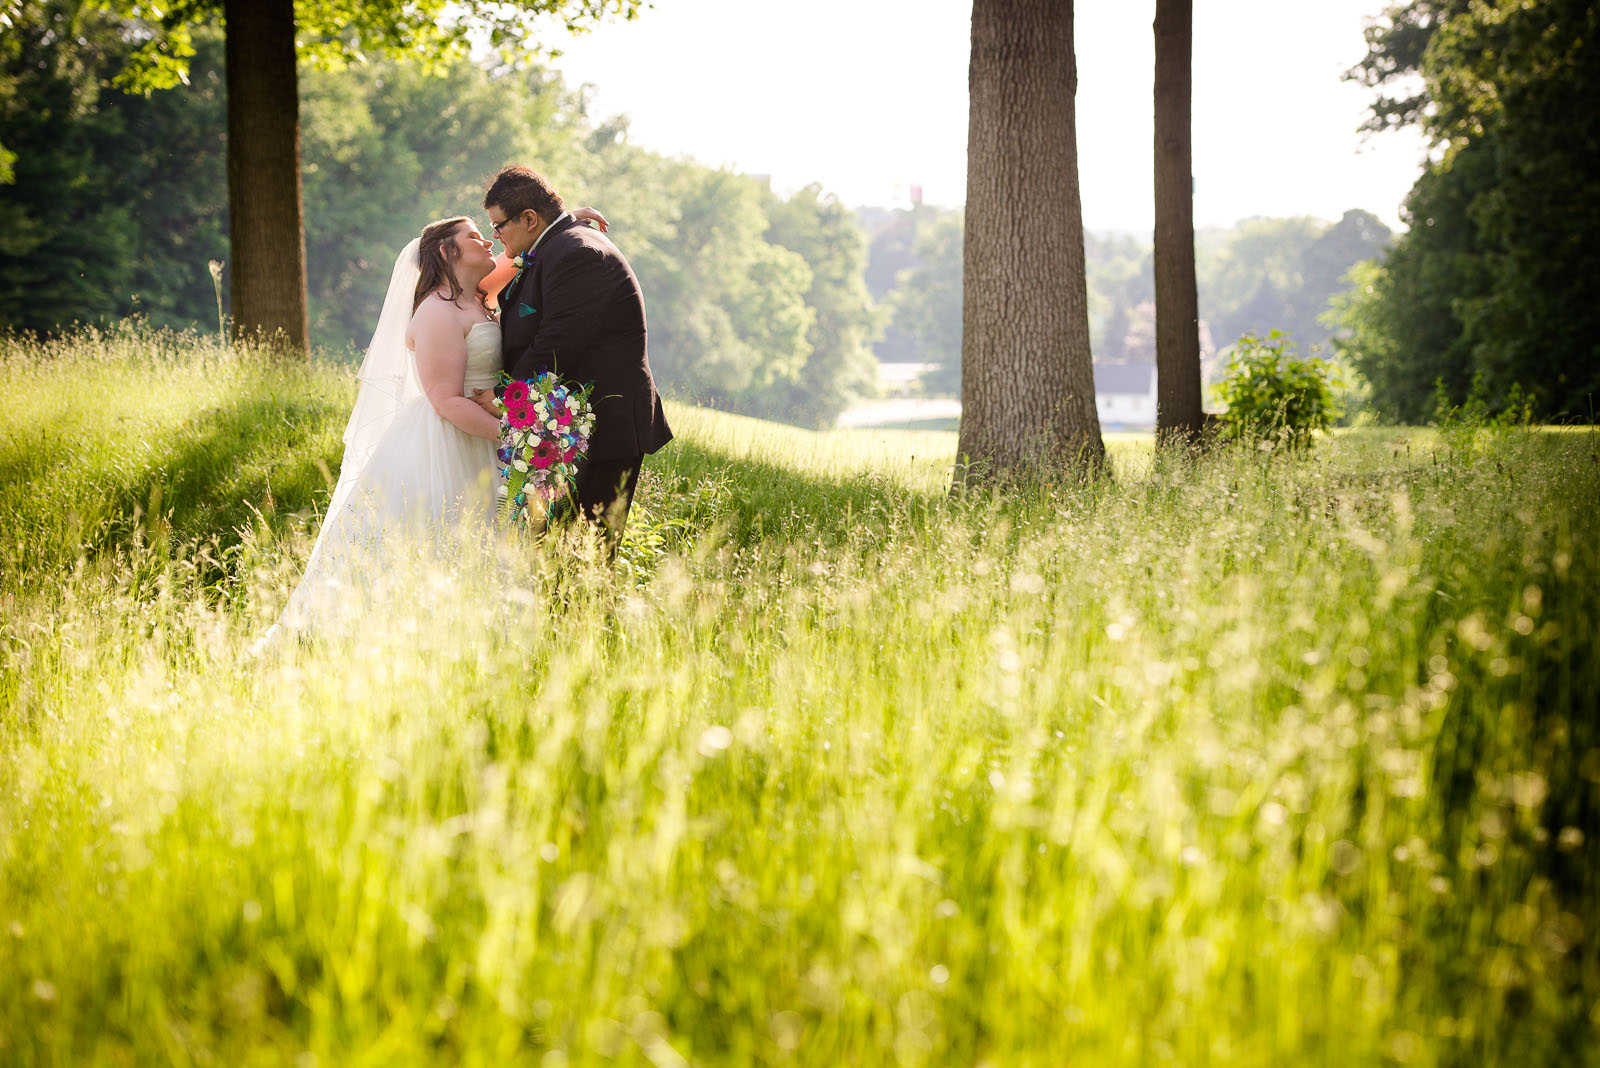 Eric_and_Christy_Photography_Blog_Shelby_Dony_Wedding-31